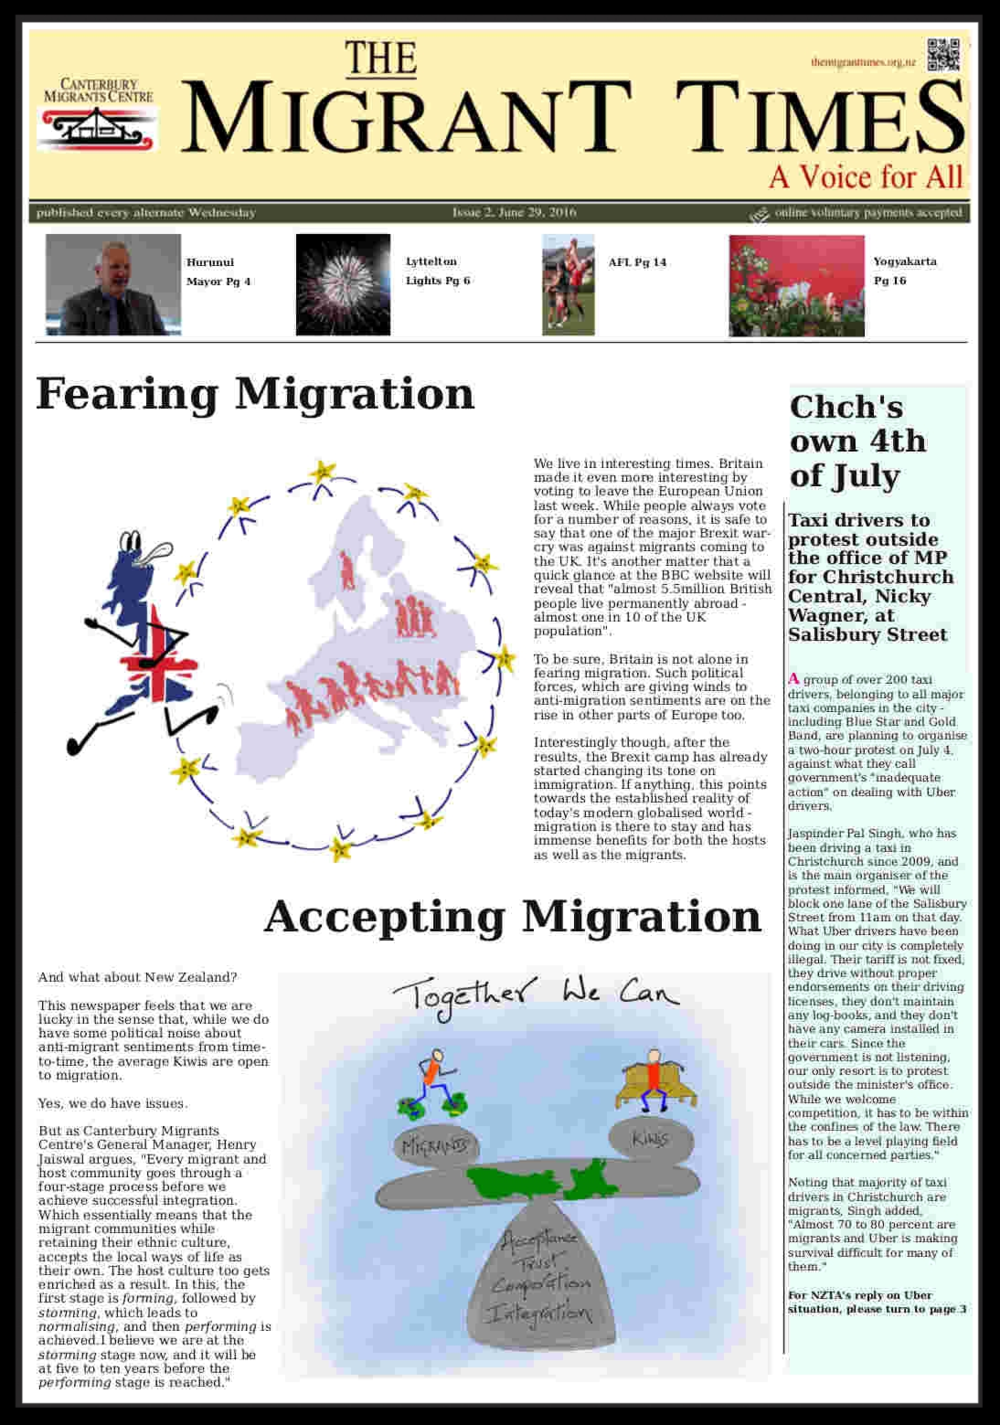 Issue 2, June 29 - July 12, 2016